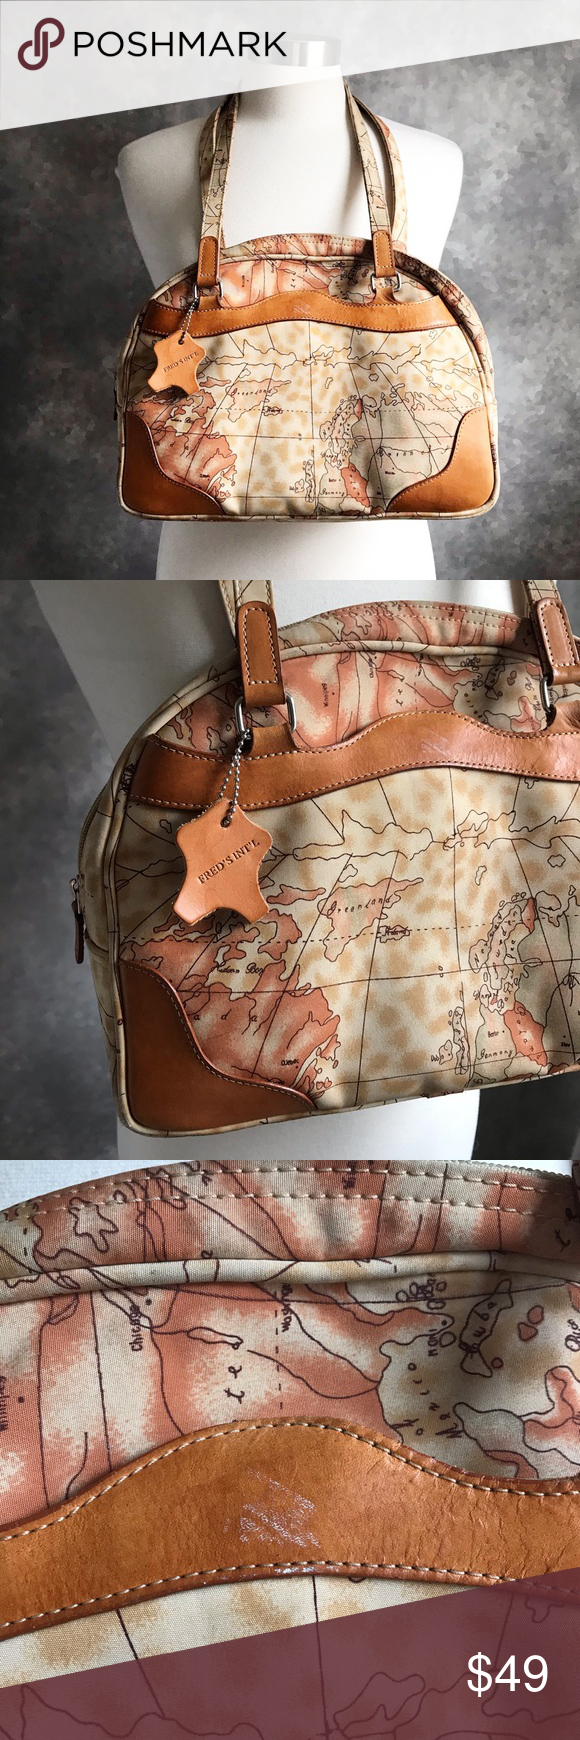 Vintage World Map Atlas Print Satchel Shoulder Bag Fred's ... on map shoes, map luggage, map boots, map crossbody, map skirt, map phone case, map jacket, map scarf, map white, map trunk, map suitcase, map wallet, map sweater,